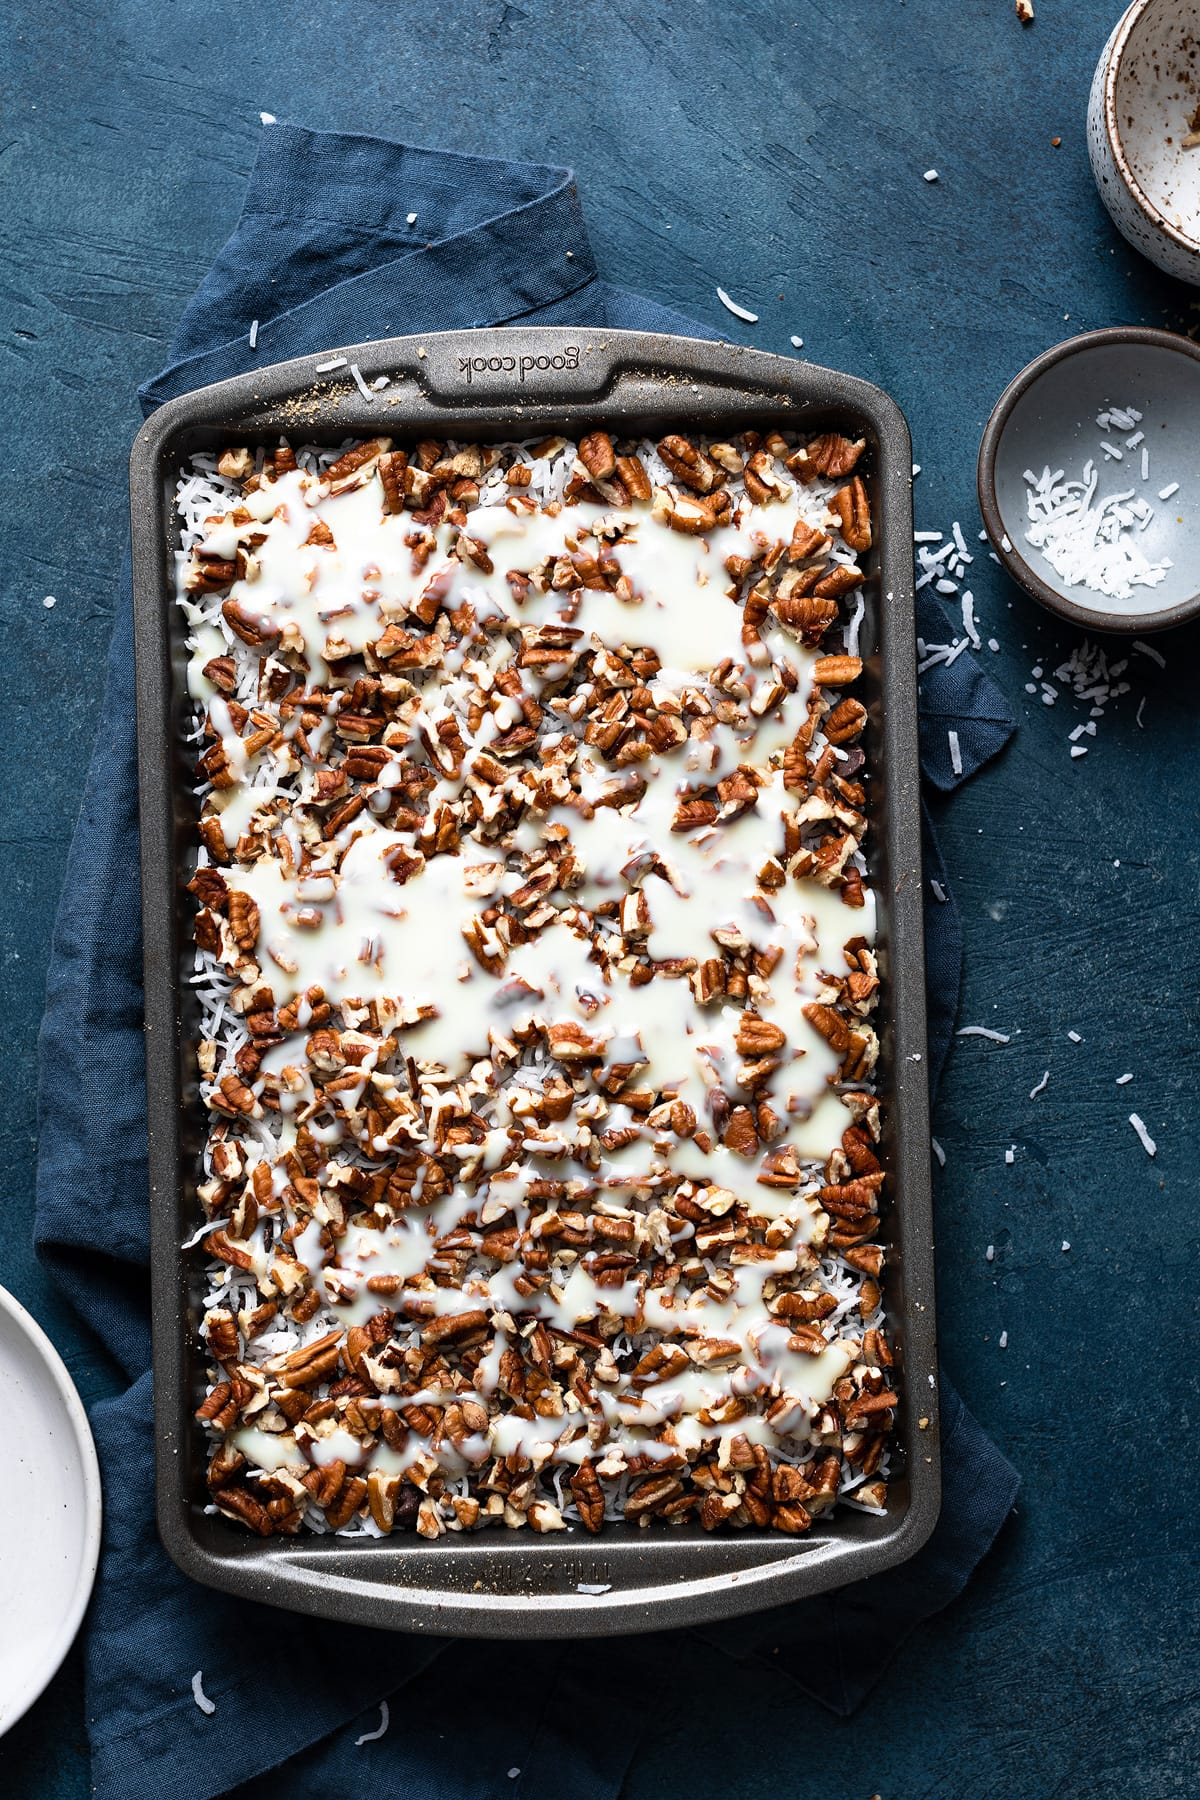 Showing how to make magic bars pouring sweetened condensed milk over chocolate chip layer in baking dish.